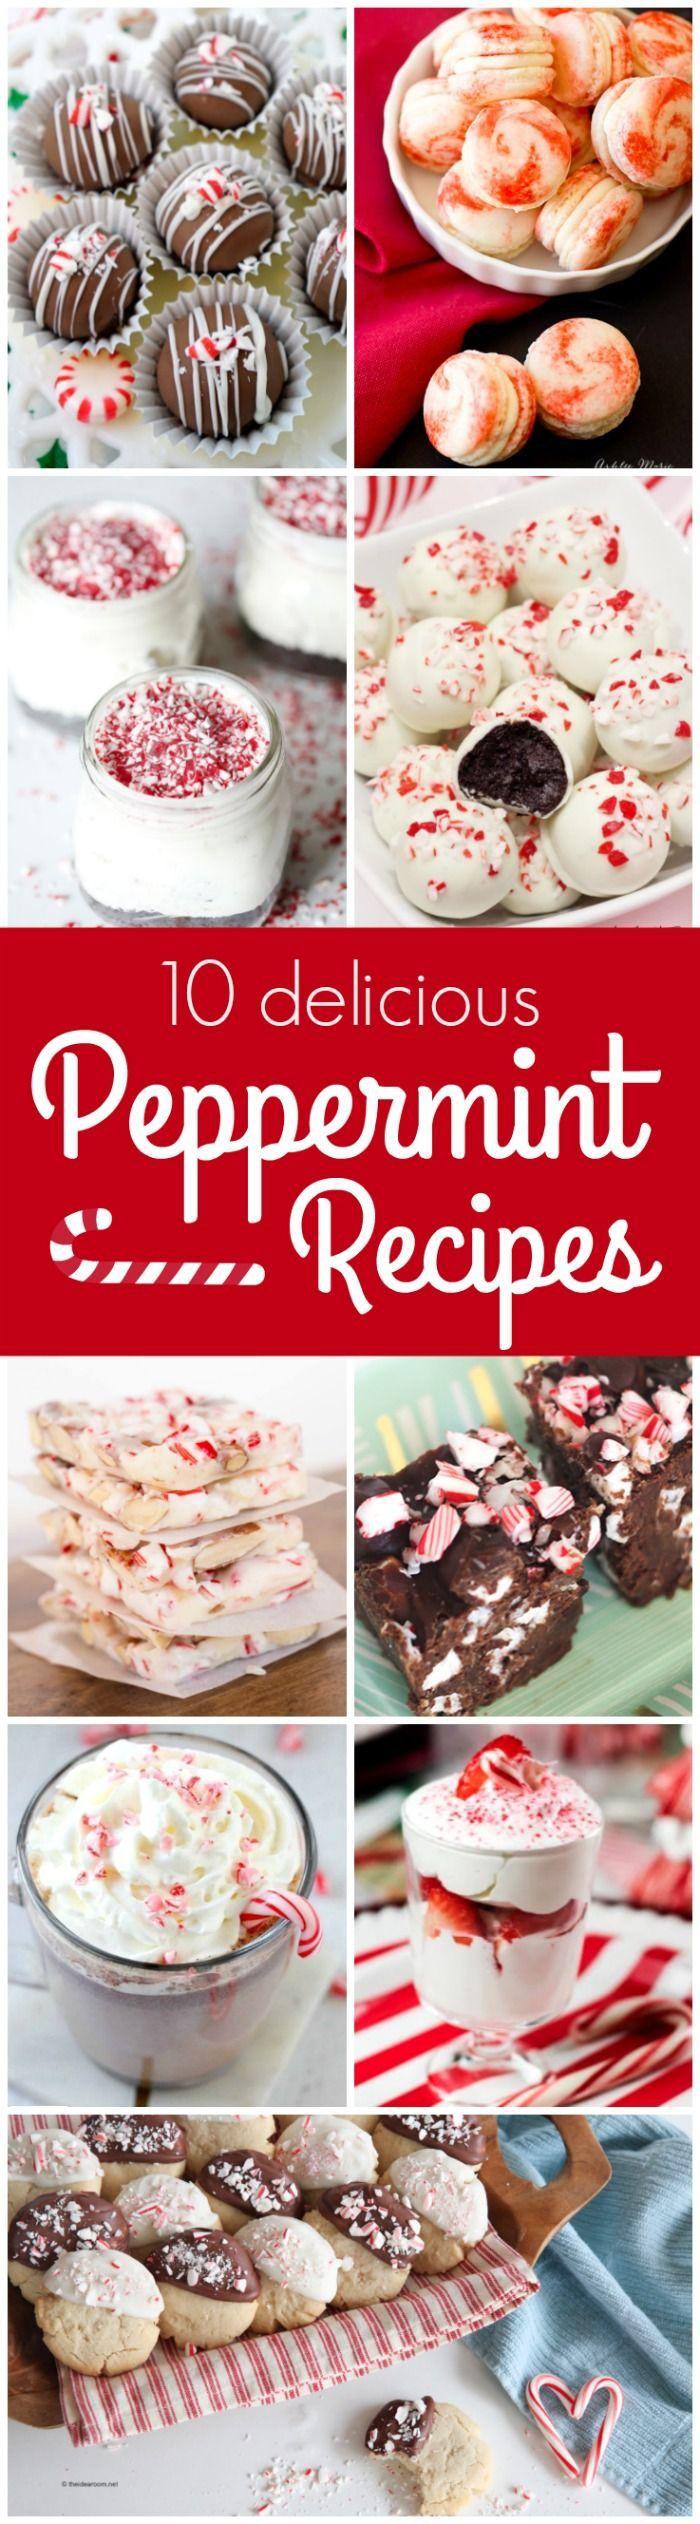 10 Peppermint Dessert Recipes!